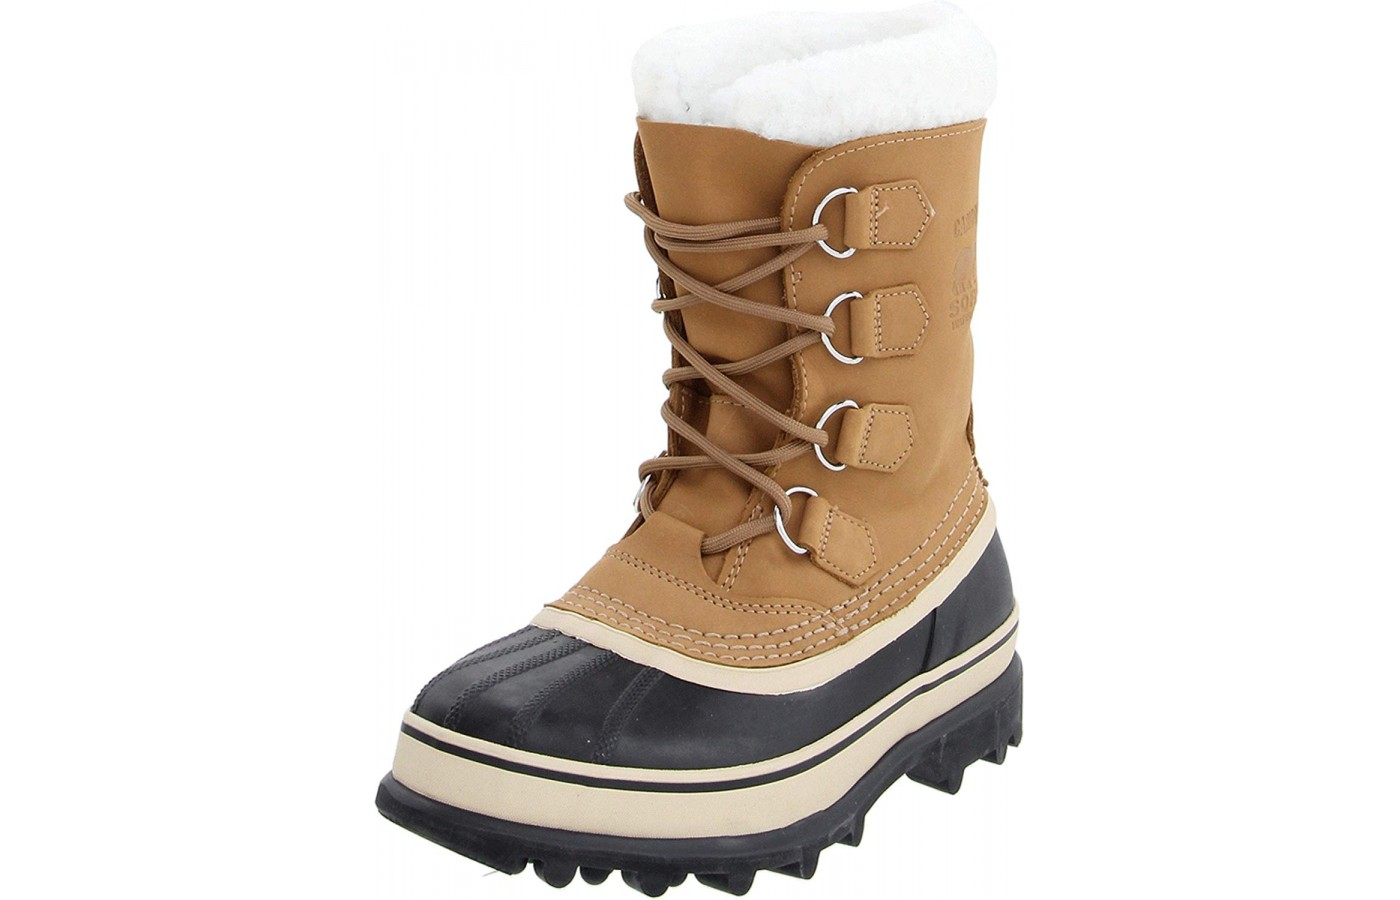 Being waterproof has been mentioned several times, and it is the primary selling point of this boot: keeping wetness out in extreme cold.